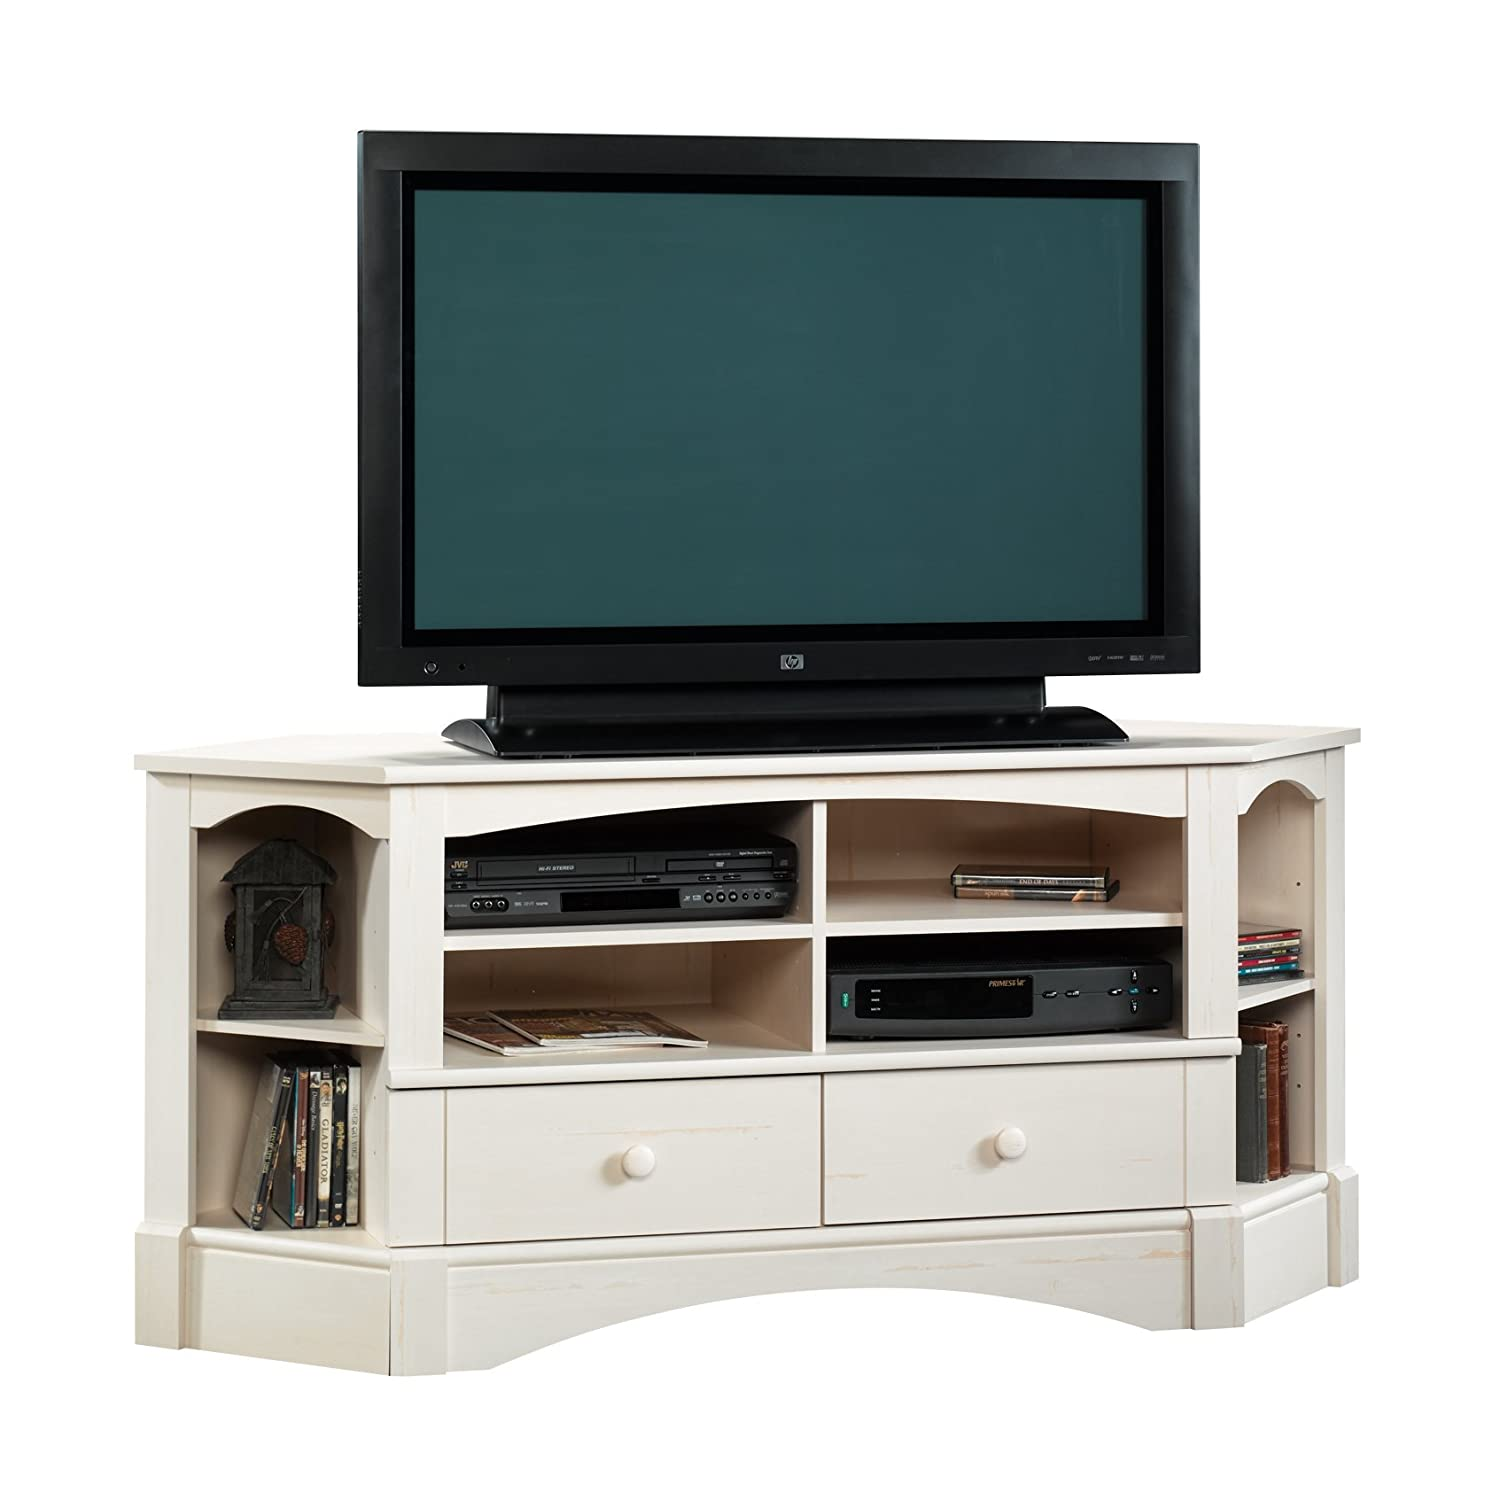 Sauder Harbor View Corner Entertainment Credenza, For TVs up to 60 , Antiqued White finish